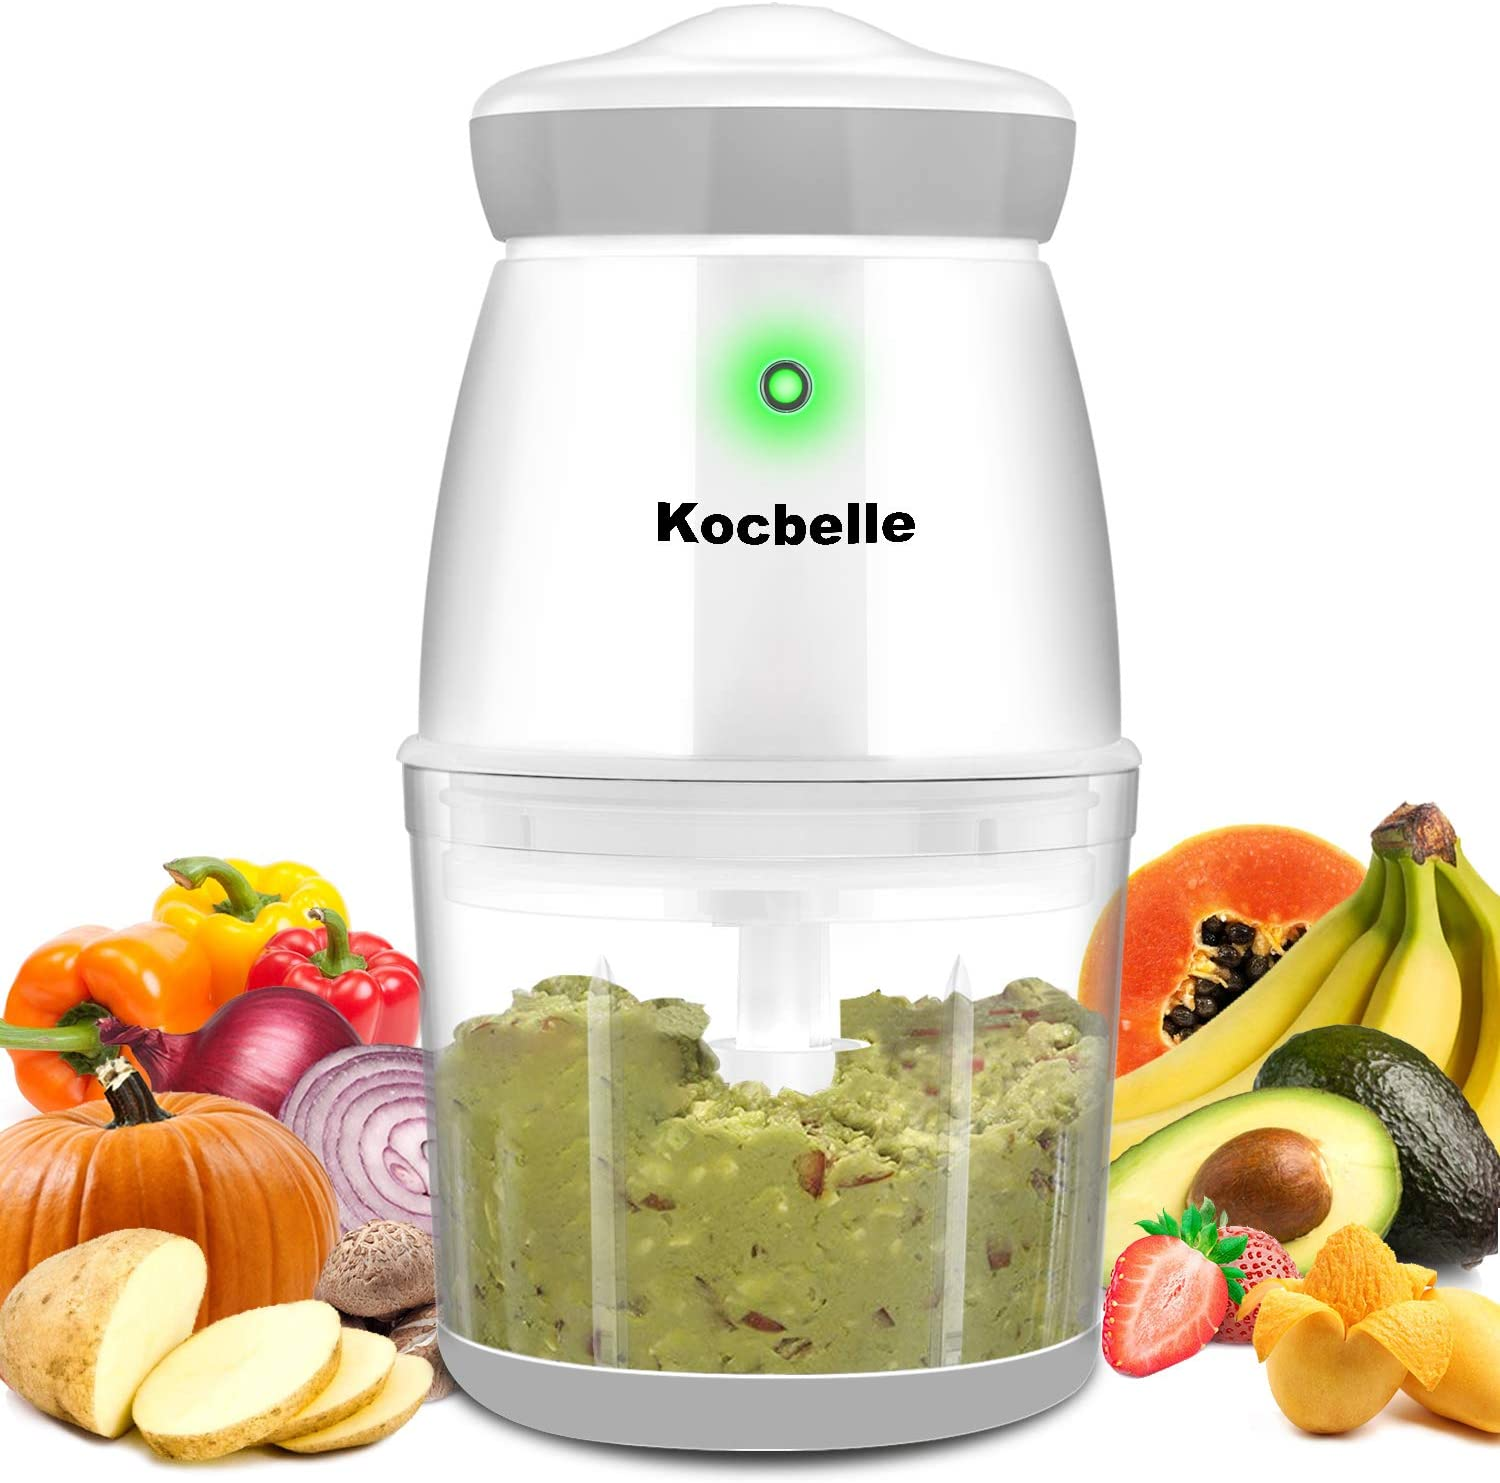 Portable Wireless Food Processor,Kocbelle 200-Watt Small Food Chopper 2.5 Cup Glass Bowl with Scraper for Blending, Mincing and Meal Preparation